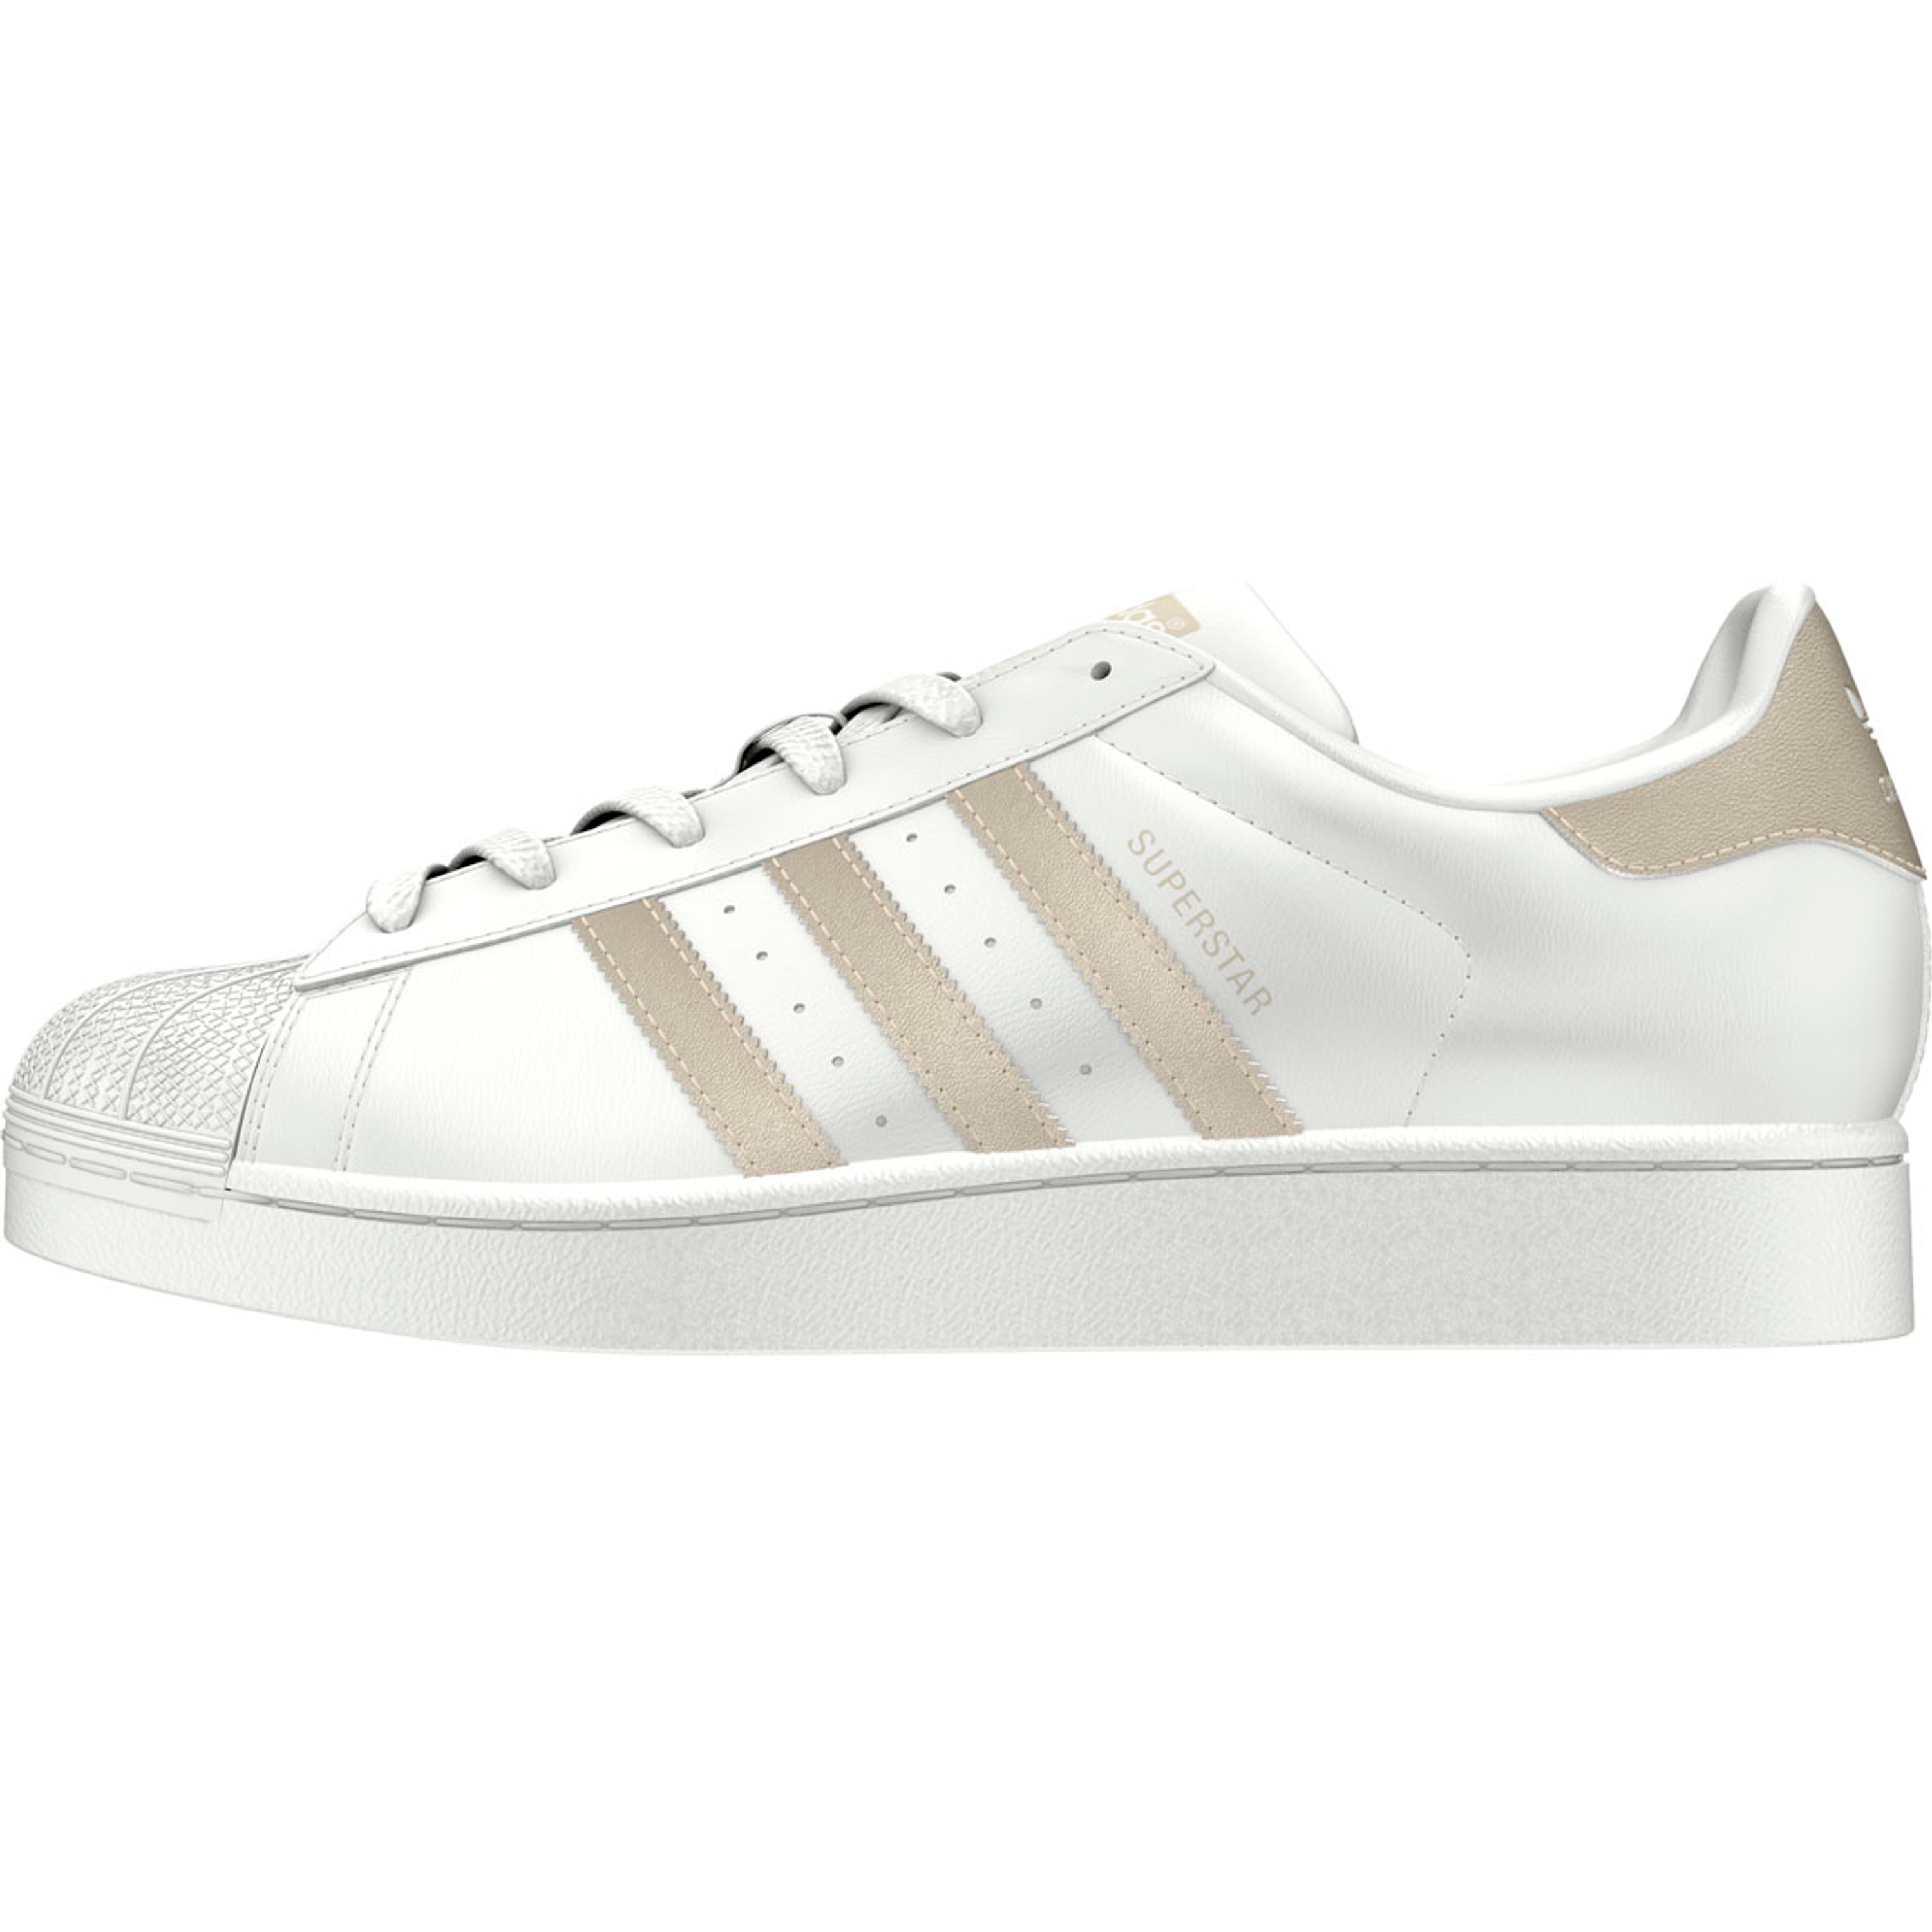 lowest price new styles huge selection of Adidas Superstar Retro-Vintage Sneakers für Damen | weiss-gold